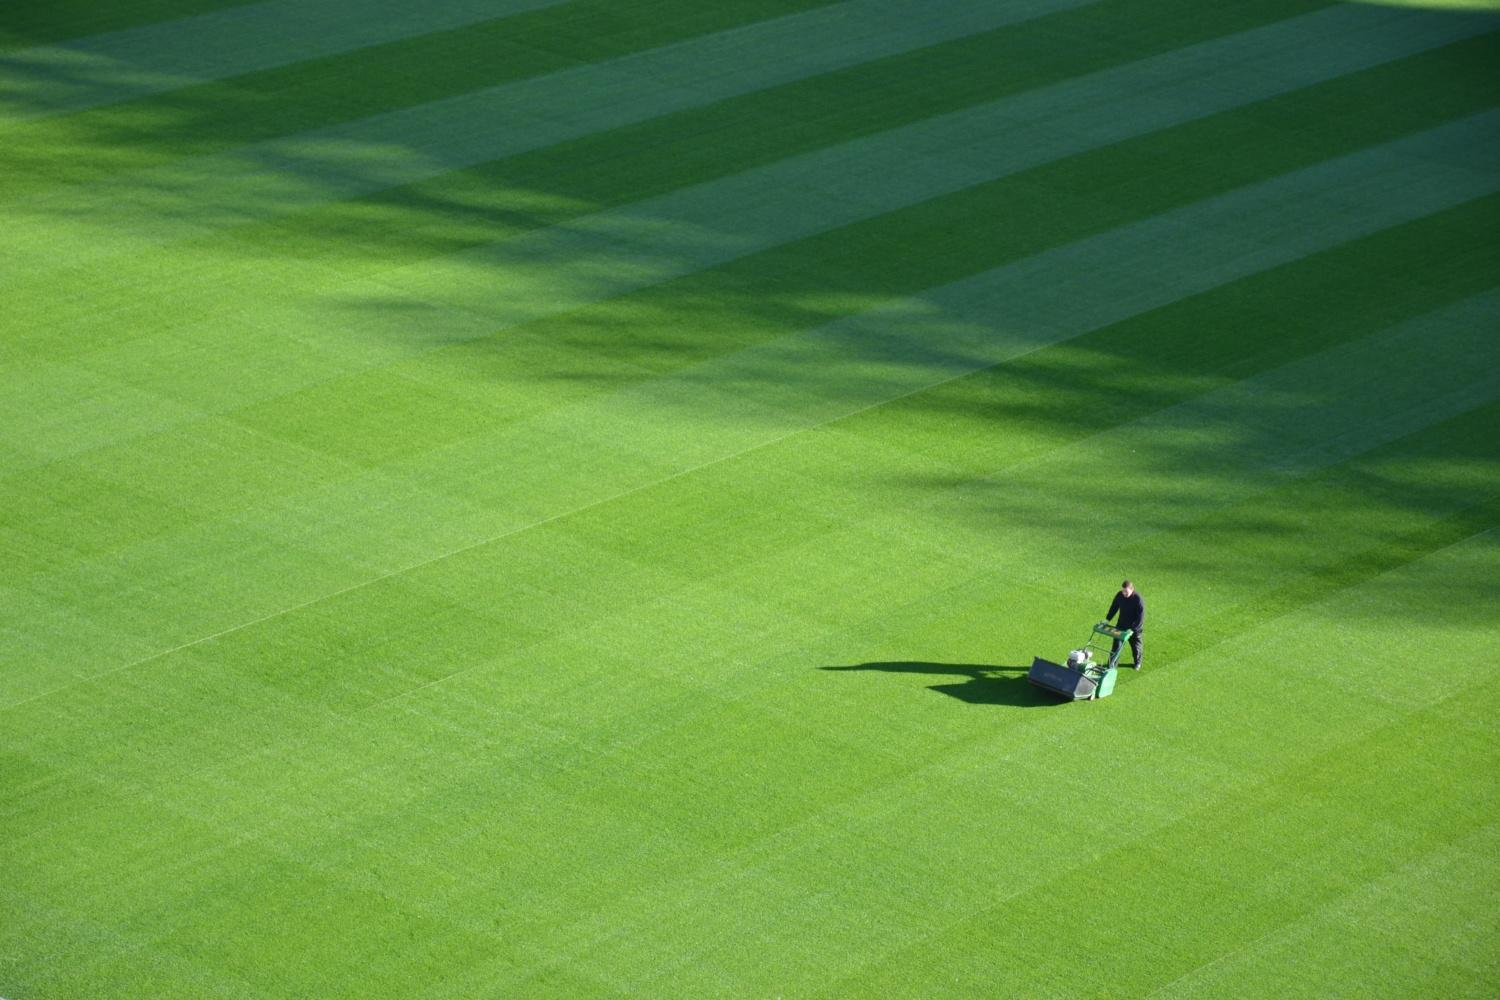 Man mowing a chequer board pattern into a lawn